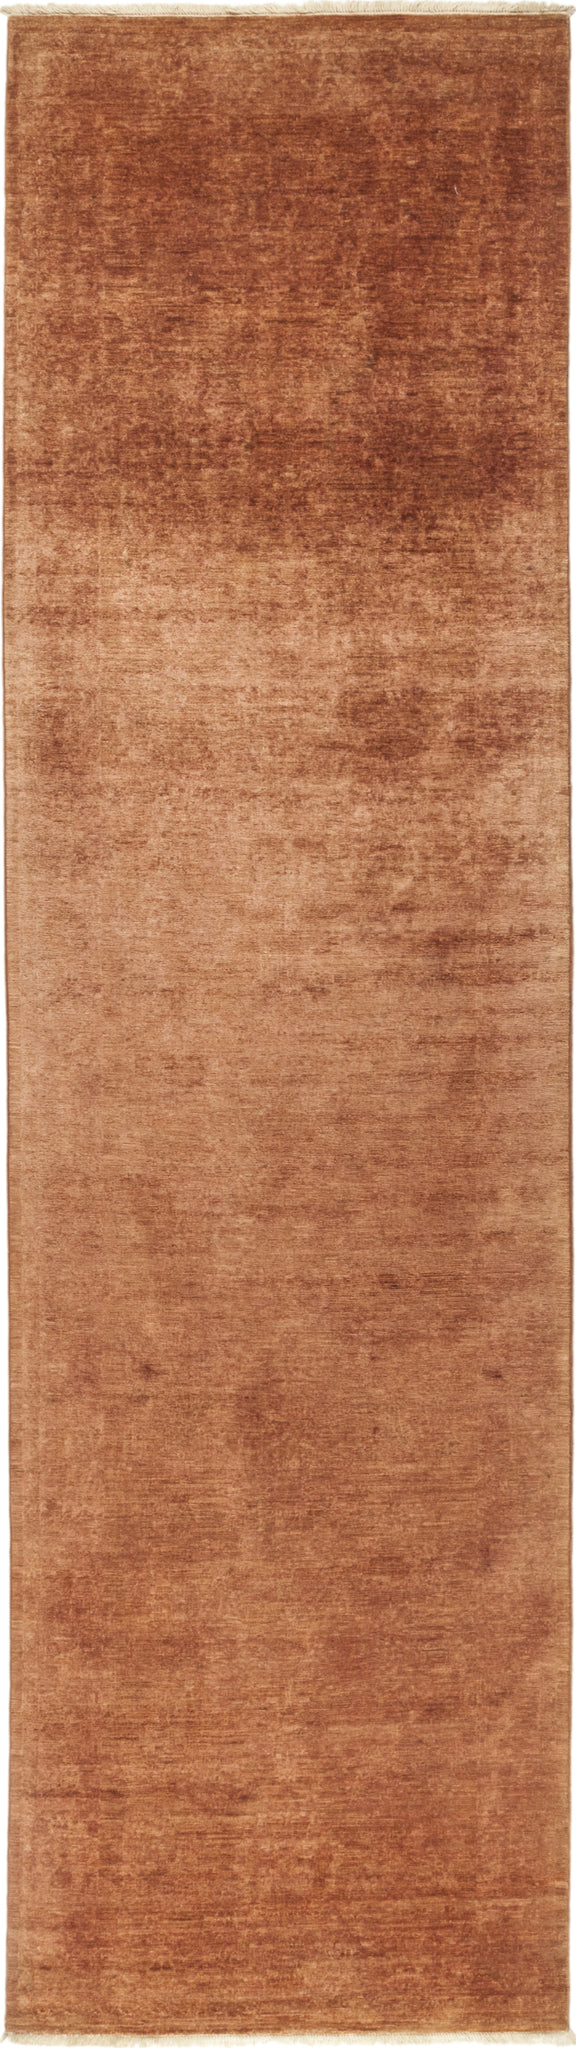 Solo Rugs Vibrance Amour Chestnut Area Rug main image